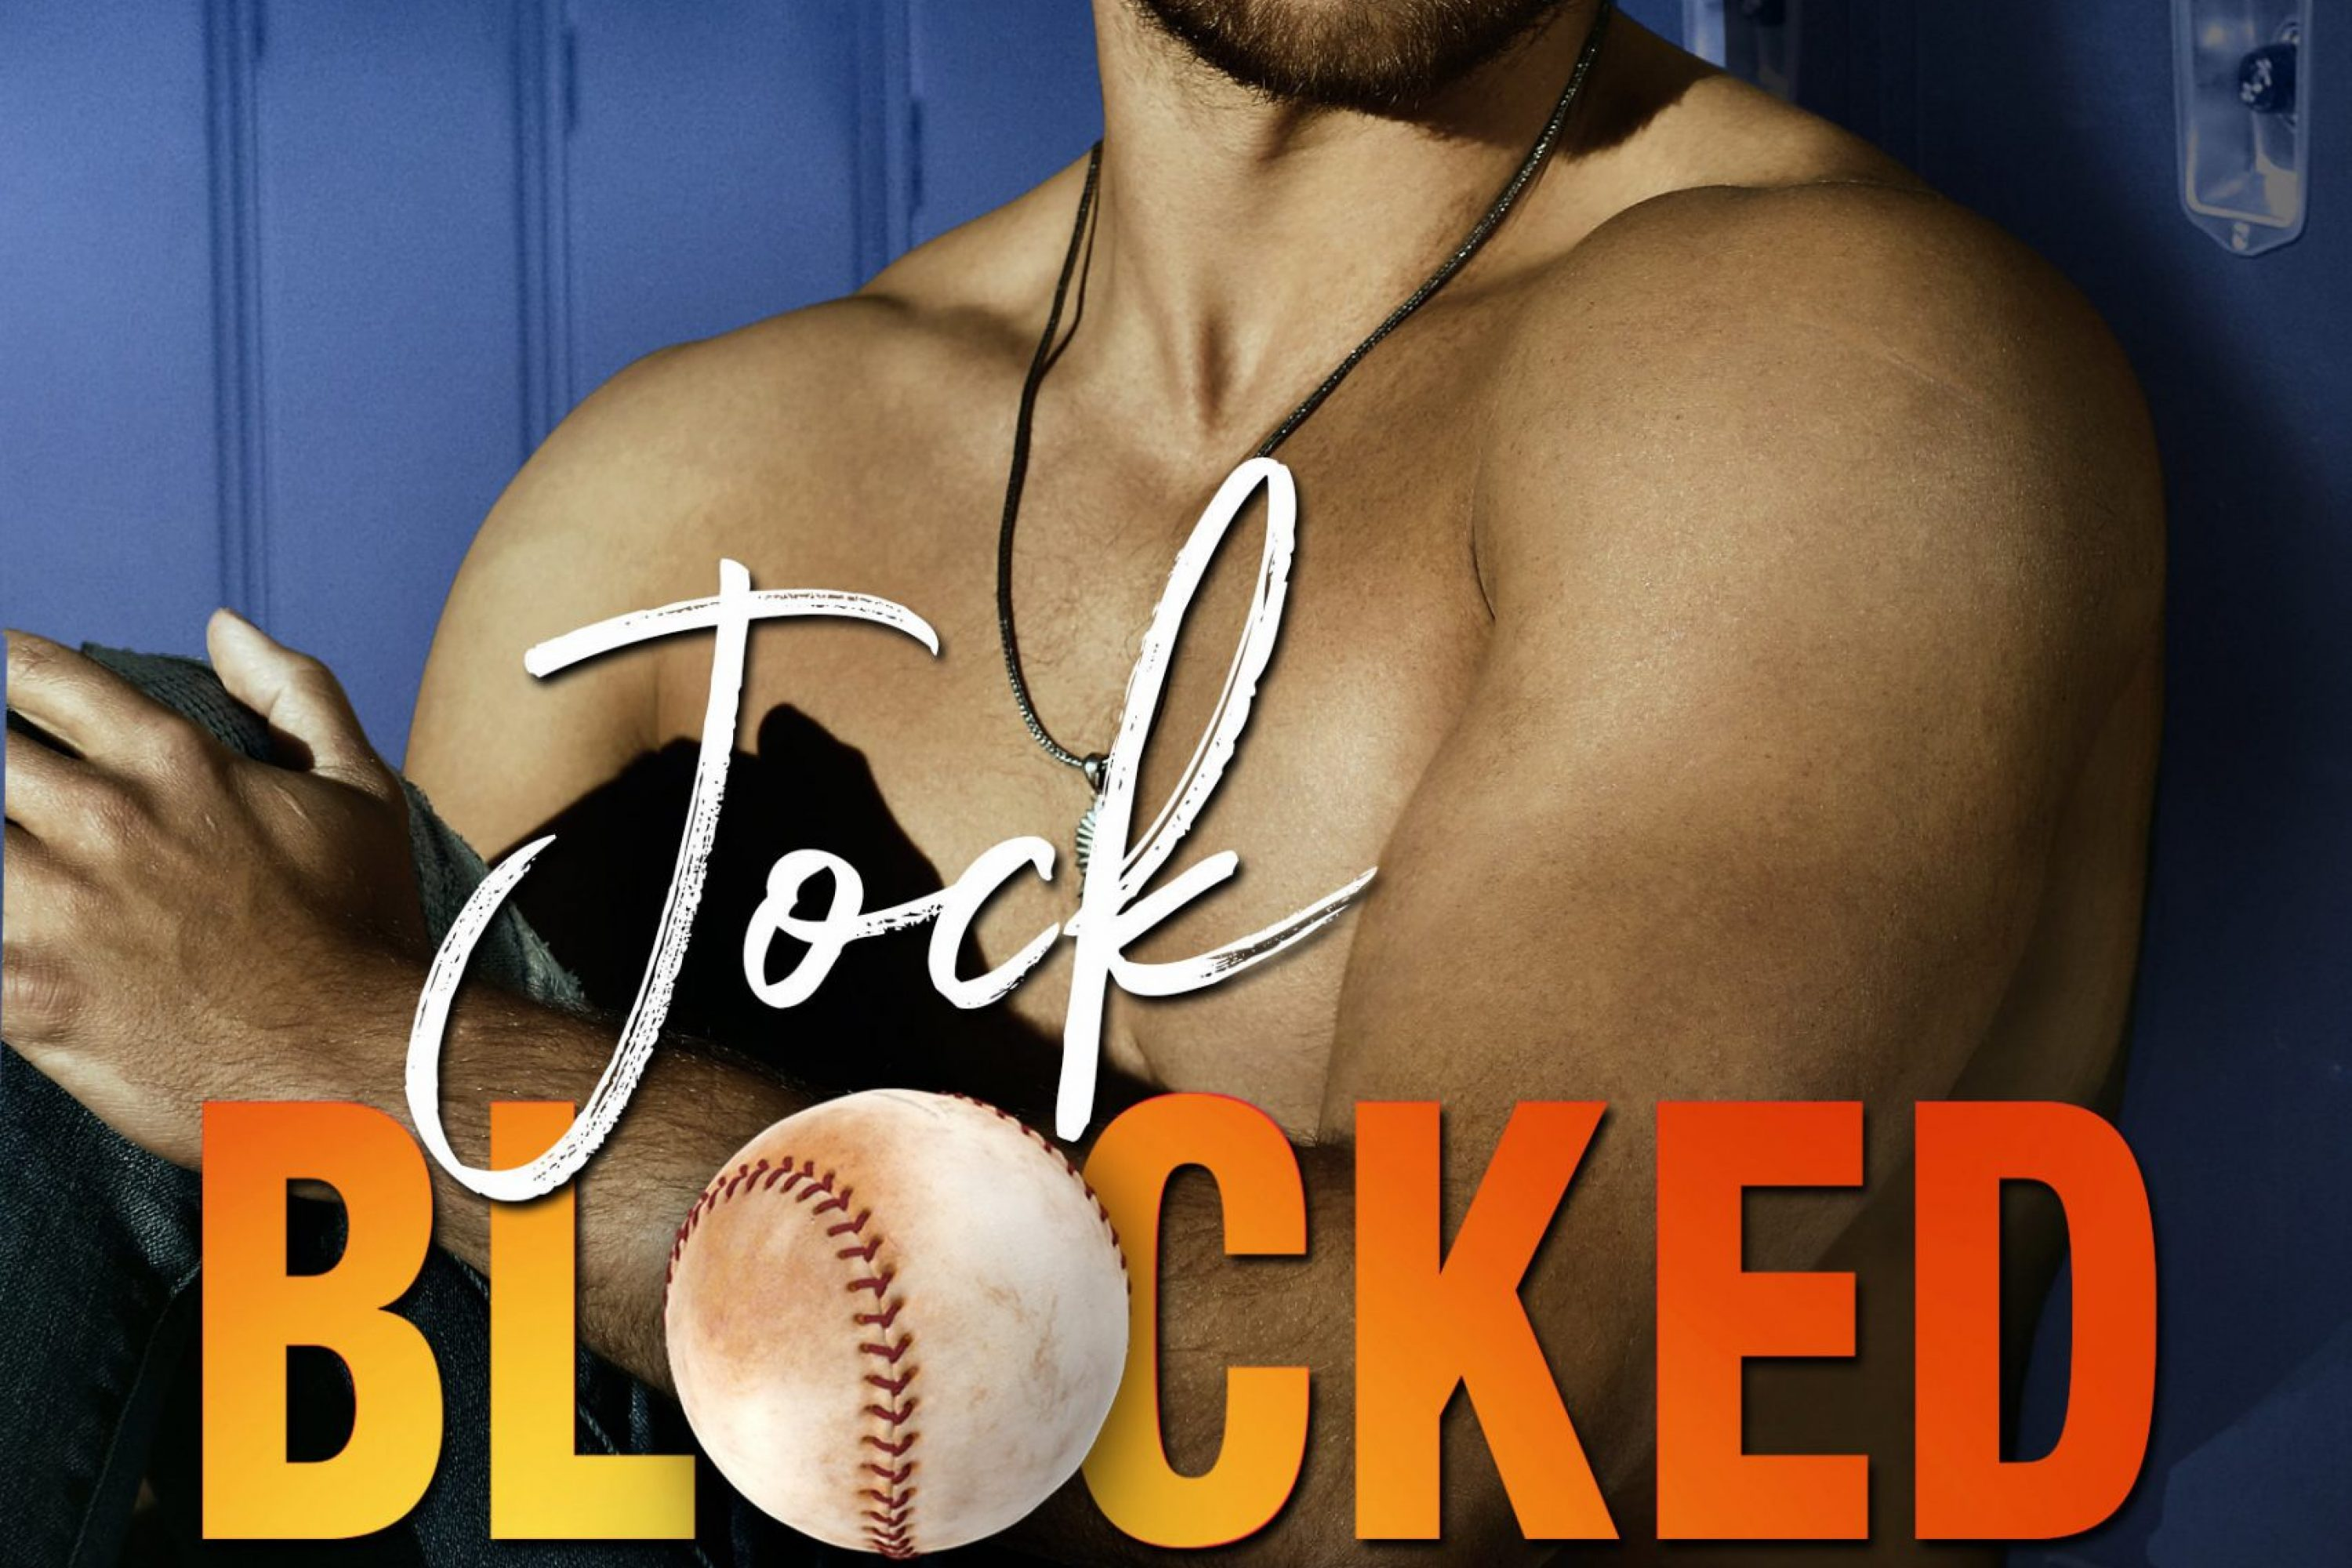 Review: Jock Blocked by Pippa Grant